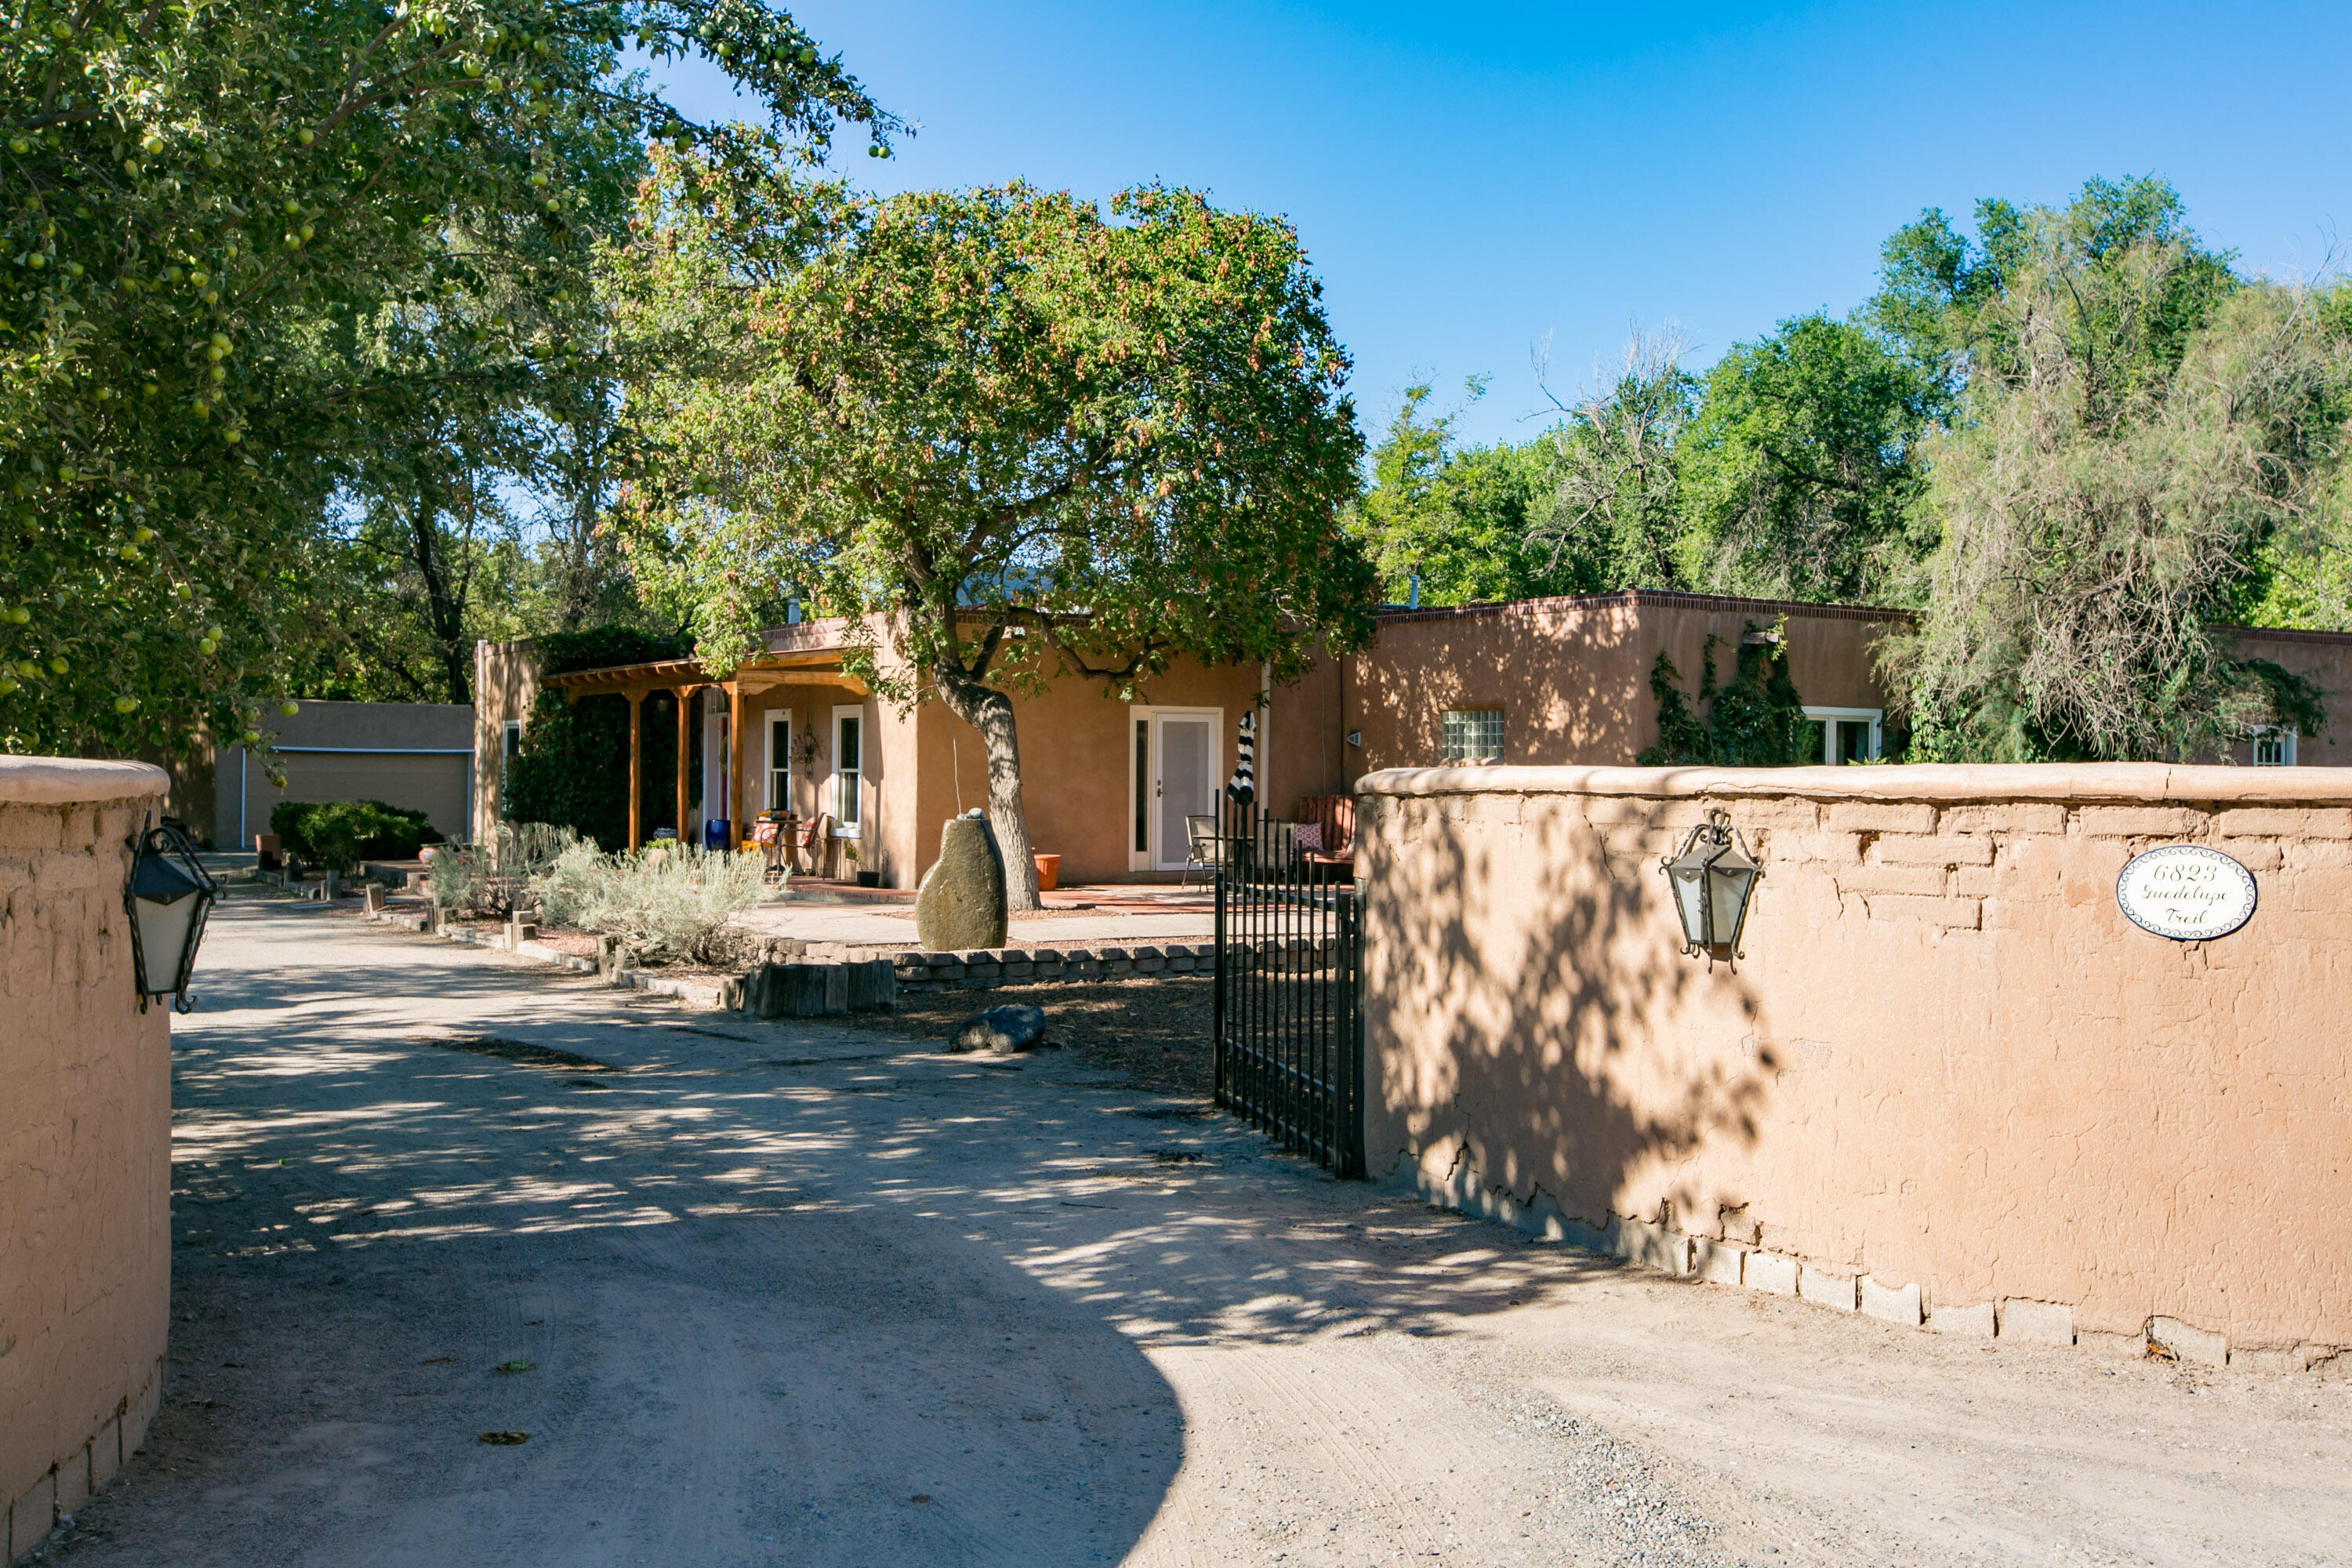 Have you been waiting for that quintessential North Valley adobe to call home?  Well, look no further!  This gorgeous 1.5+ acre property is nestled on a private lane in a verdant neighborhood just blocks from Rio Grande. Traditional NM architecture blends seamlessly with timeless artistic elements to charm you from start to finish.  Your guests will be greeted by a lovely sitting porch.  Light and bright, the warmth of this amazing home is felt throughout, from high ceilings accentuated by rough hewn beams to the brick and wood floors to the skylights and kiva fireplaces.  Kitchen boasts  wood cabinets, granite countertops, Viking gas stove with griddle and range hood, large breakfast nook plus a formal dining room with a kiva FP.  Gracious owner's suite ...(more)